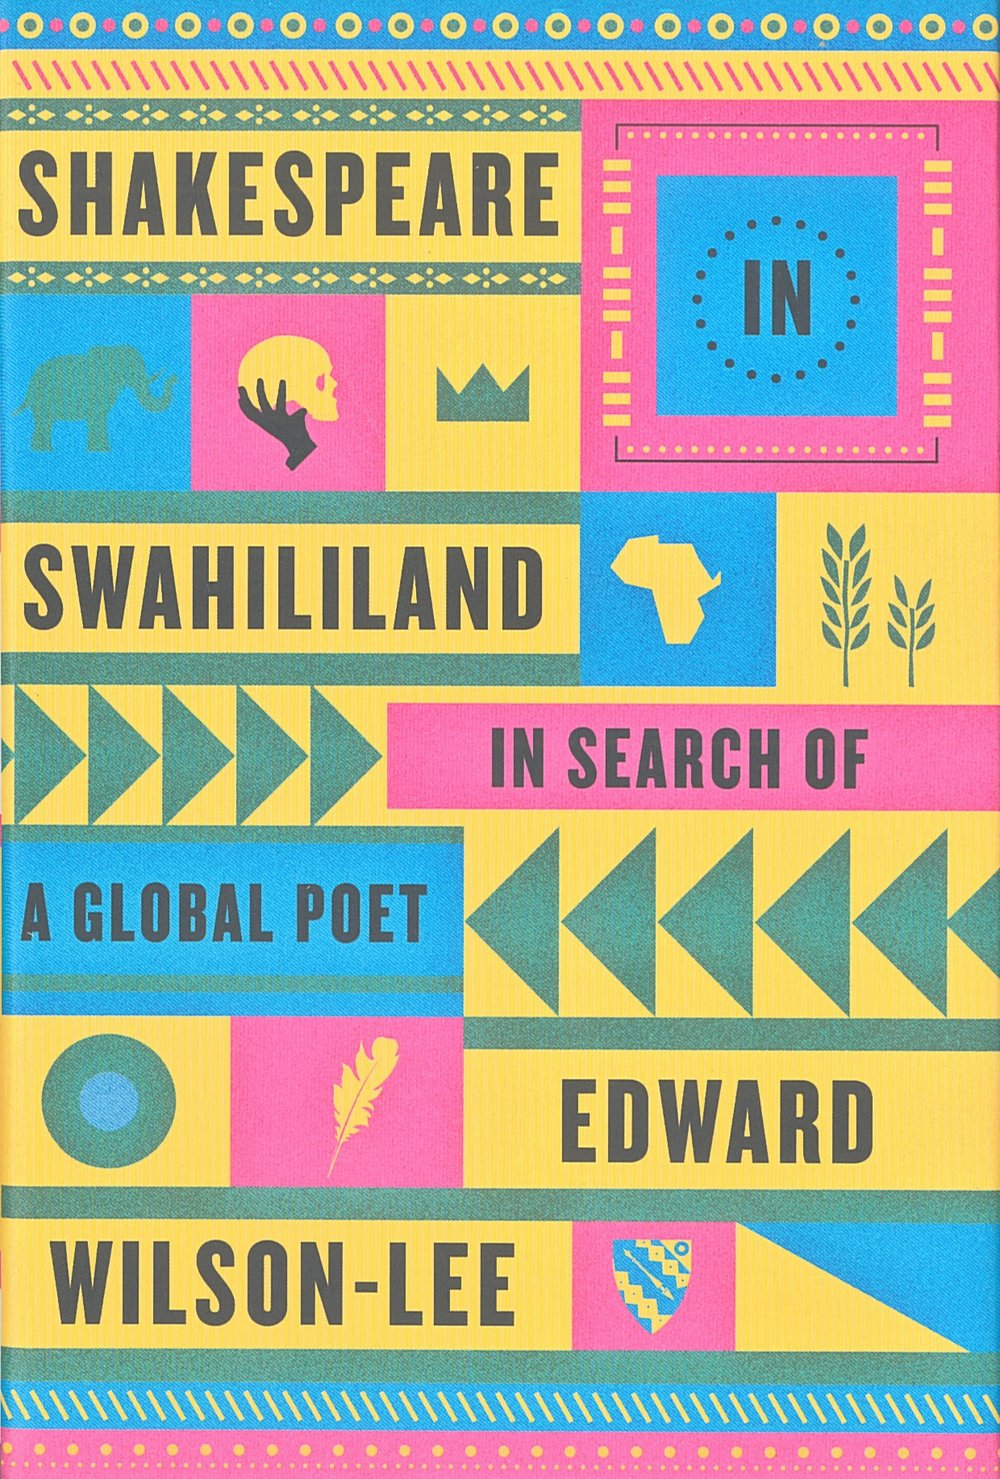 SHAKESPEARE IN SWAHILILAND - WILSON-LEE Edward - US, FSG (front).jpg